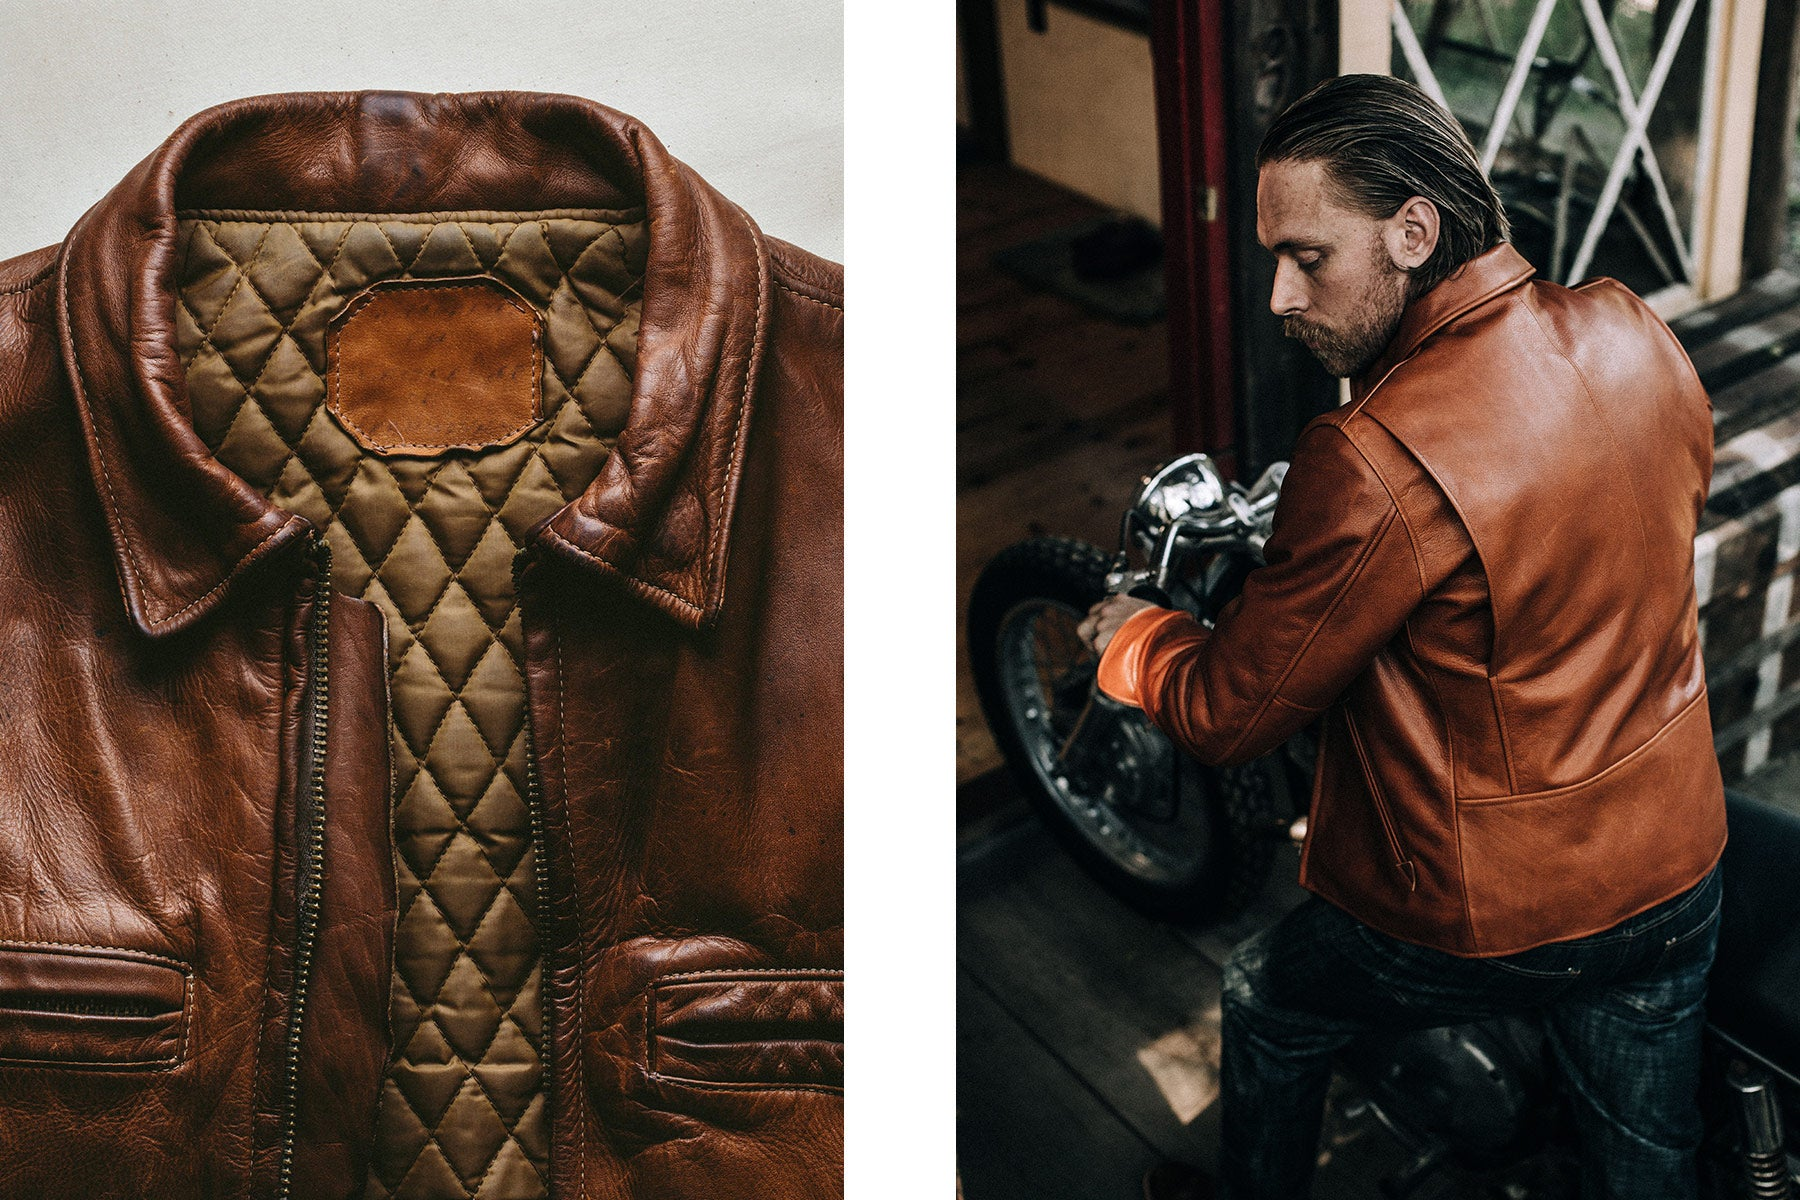 e1b8c2c80 The Whiskey Leather Moto Jacket - The Old & The New, Cafe ...